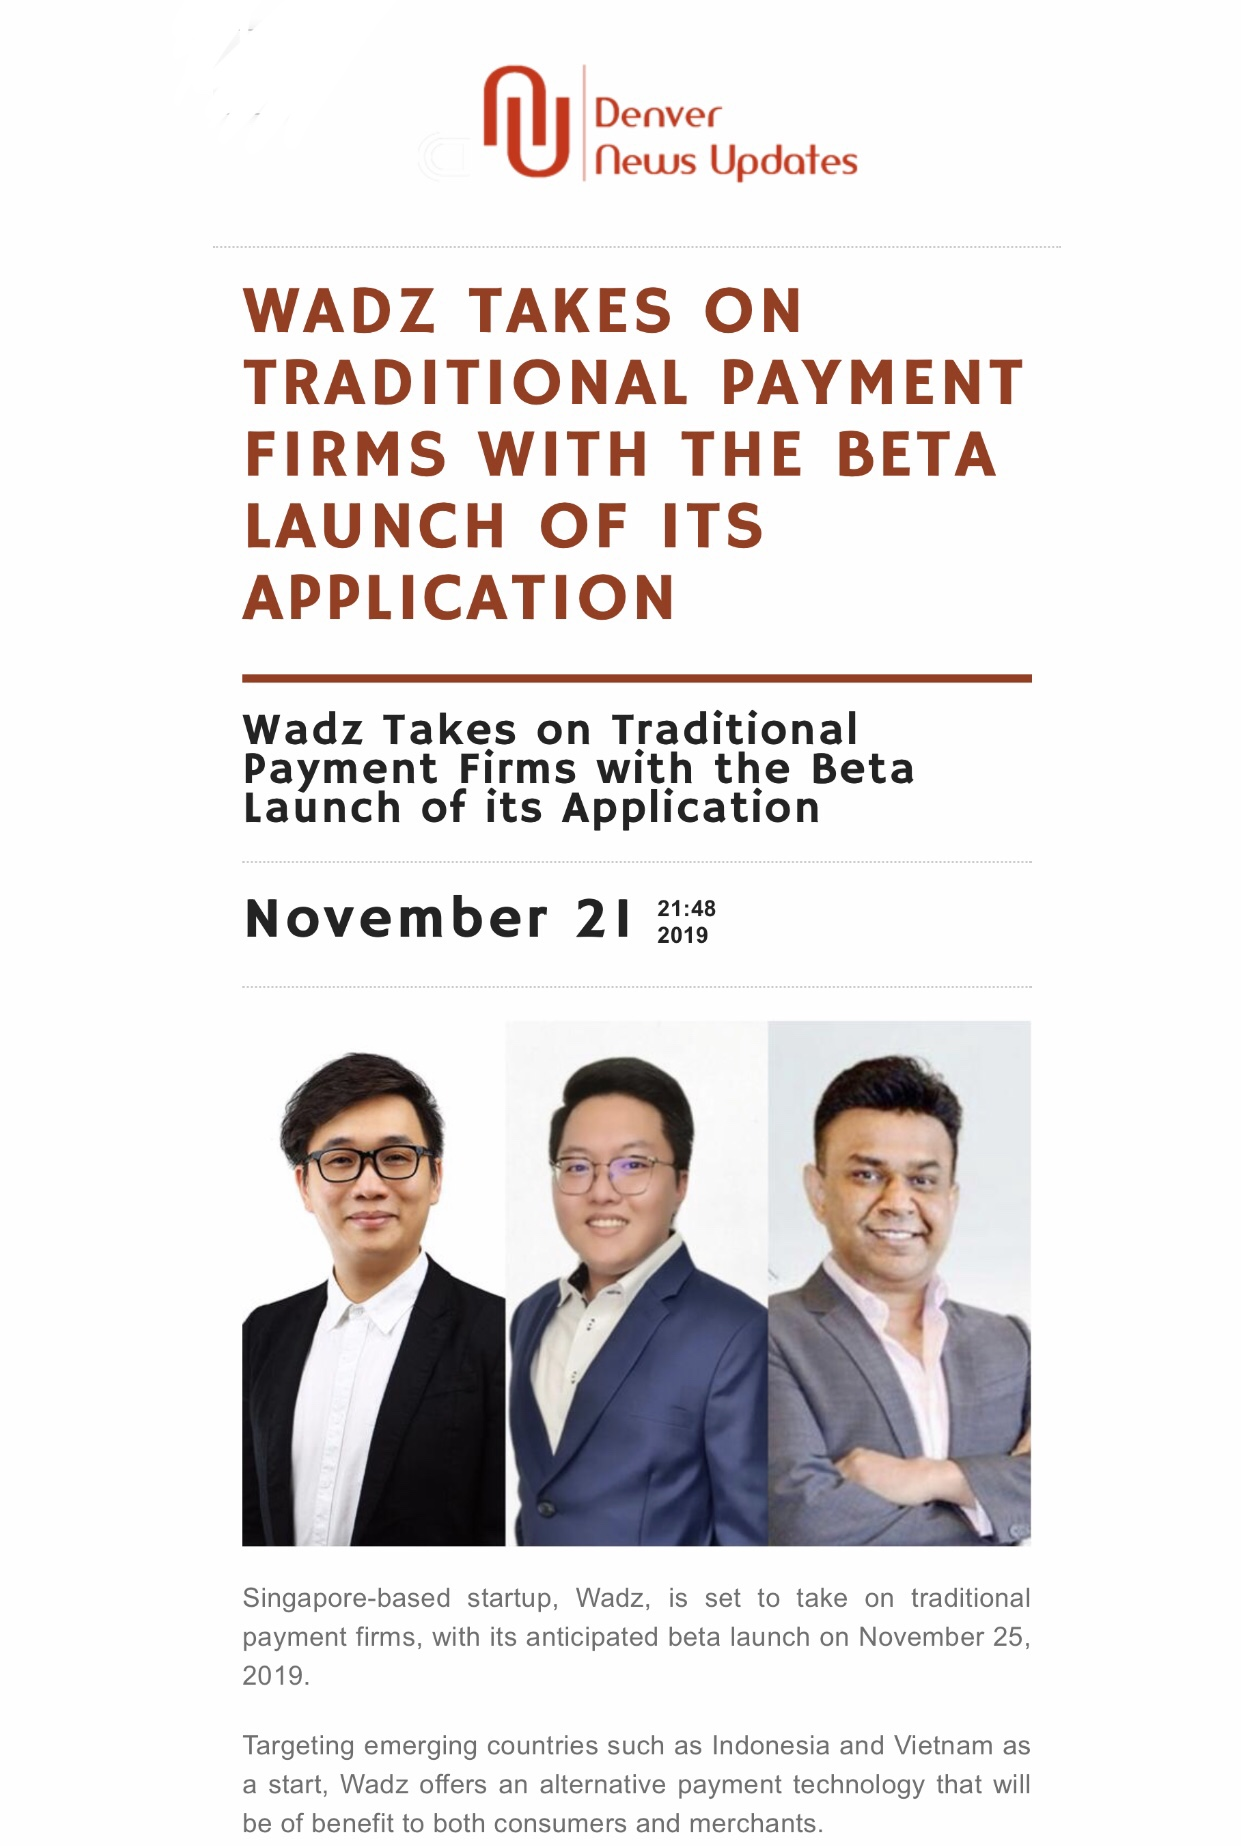 , Denver News Updates: WADZ TAKES ON TRADITIONAL PAYMENT FIRMS WITH THE BETA LAUNCH OF ITS APPLICATION, Blockchain Adviser for Inter-Governmental Organisation | Book Author | Investor | Board Member